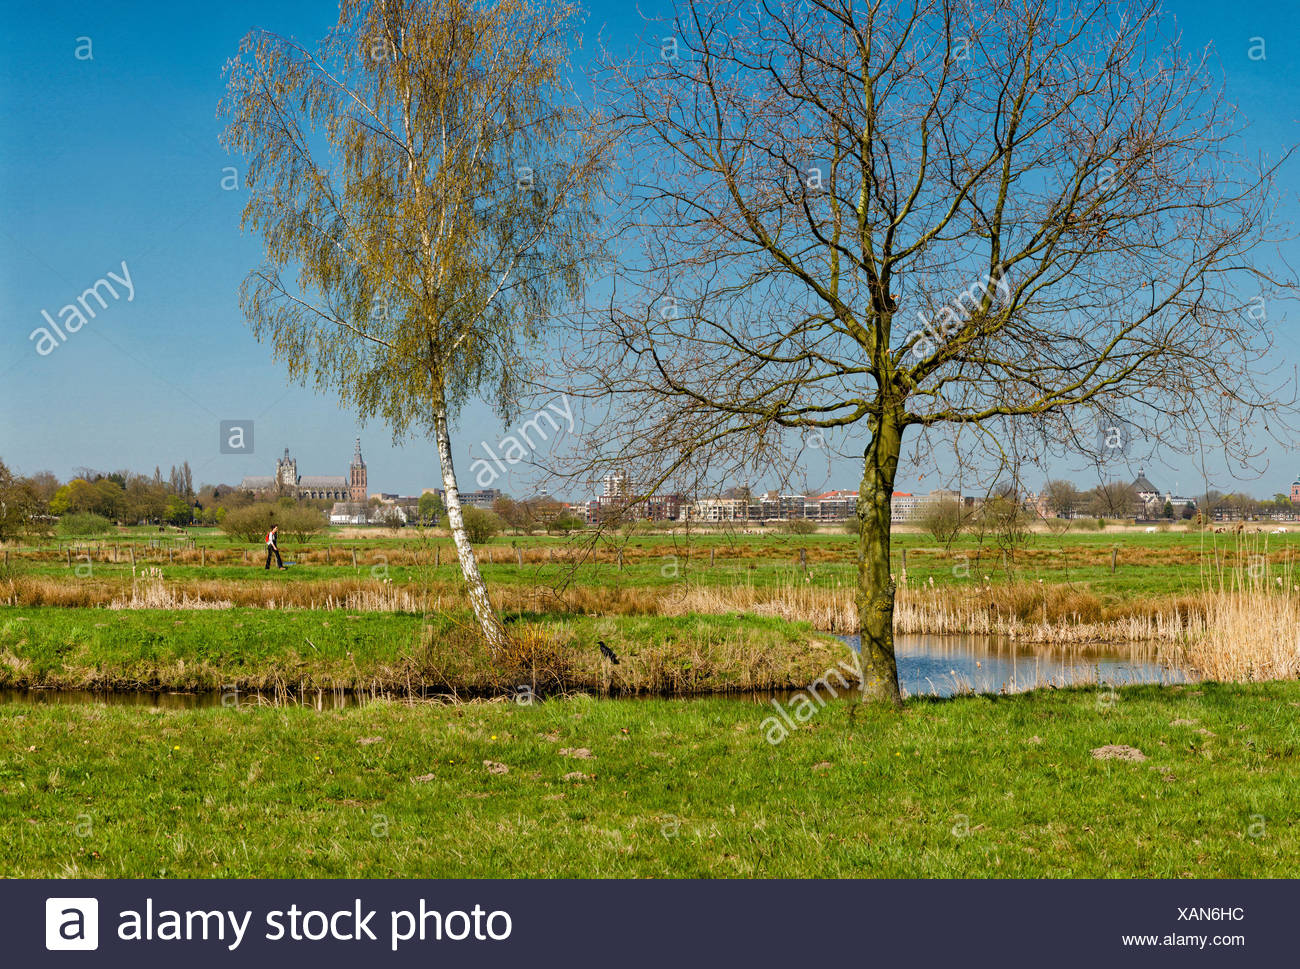 S-Hertogenbosch, Den Bosch, Pays-Bas, Hollande, Europe, paysage, champ, prairie, arbres, printemps, les gens, Photo Stock